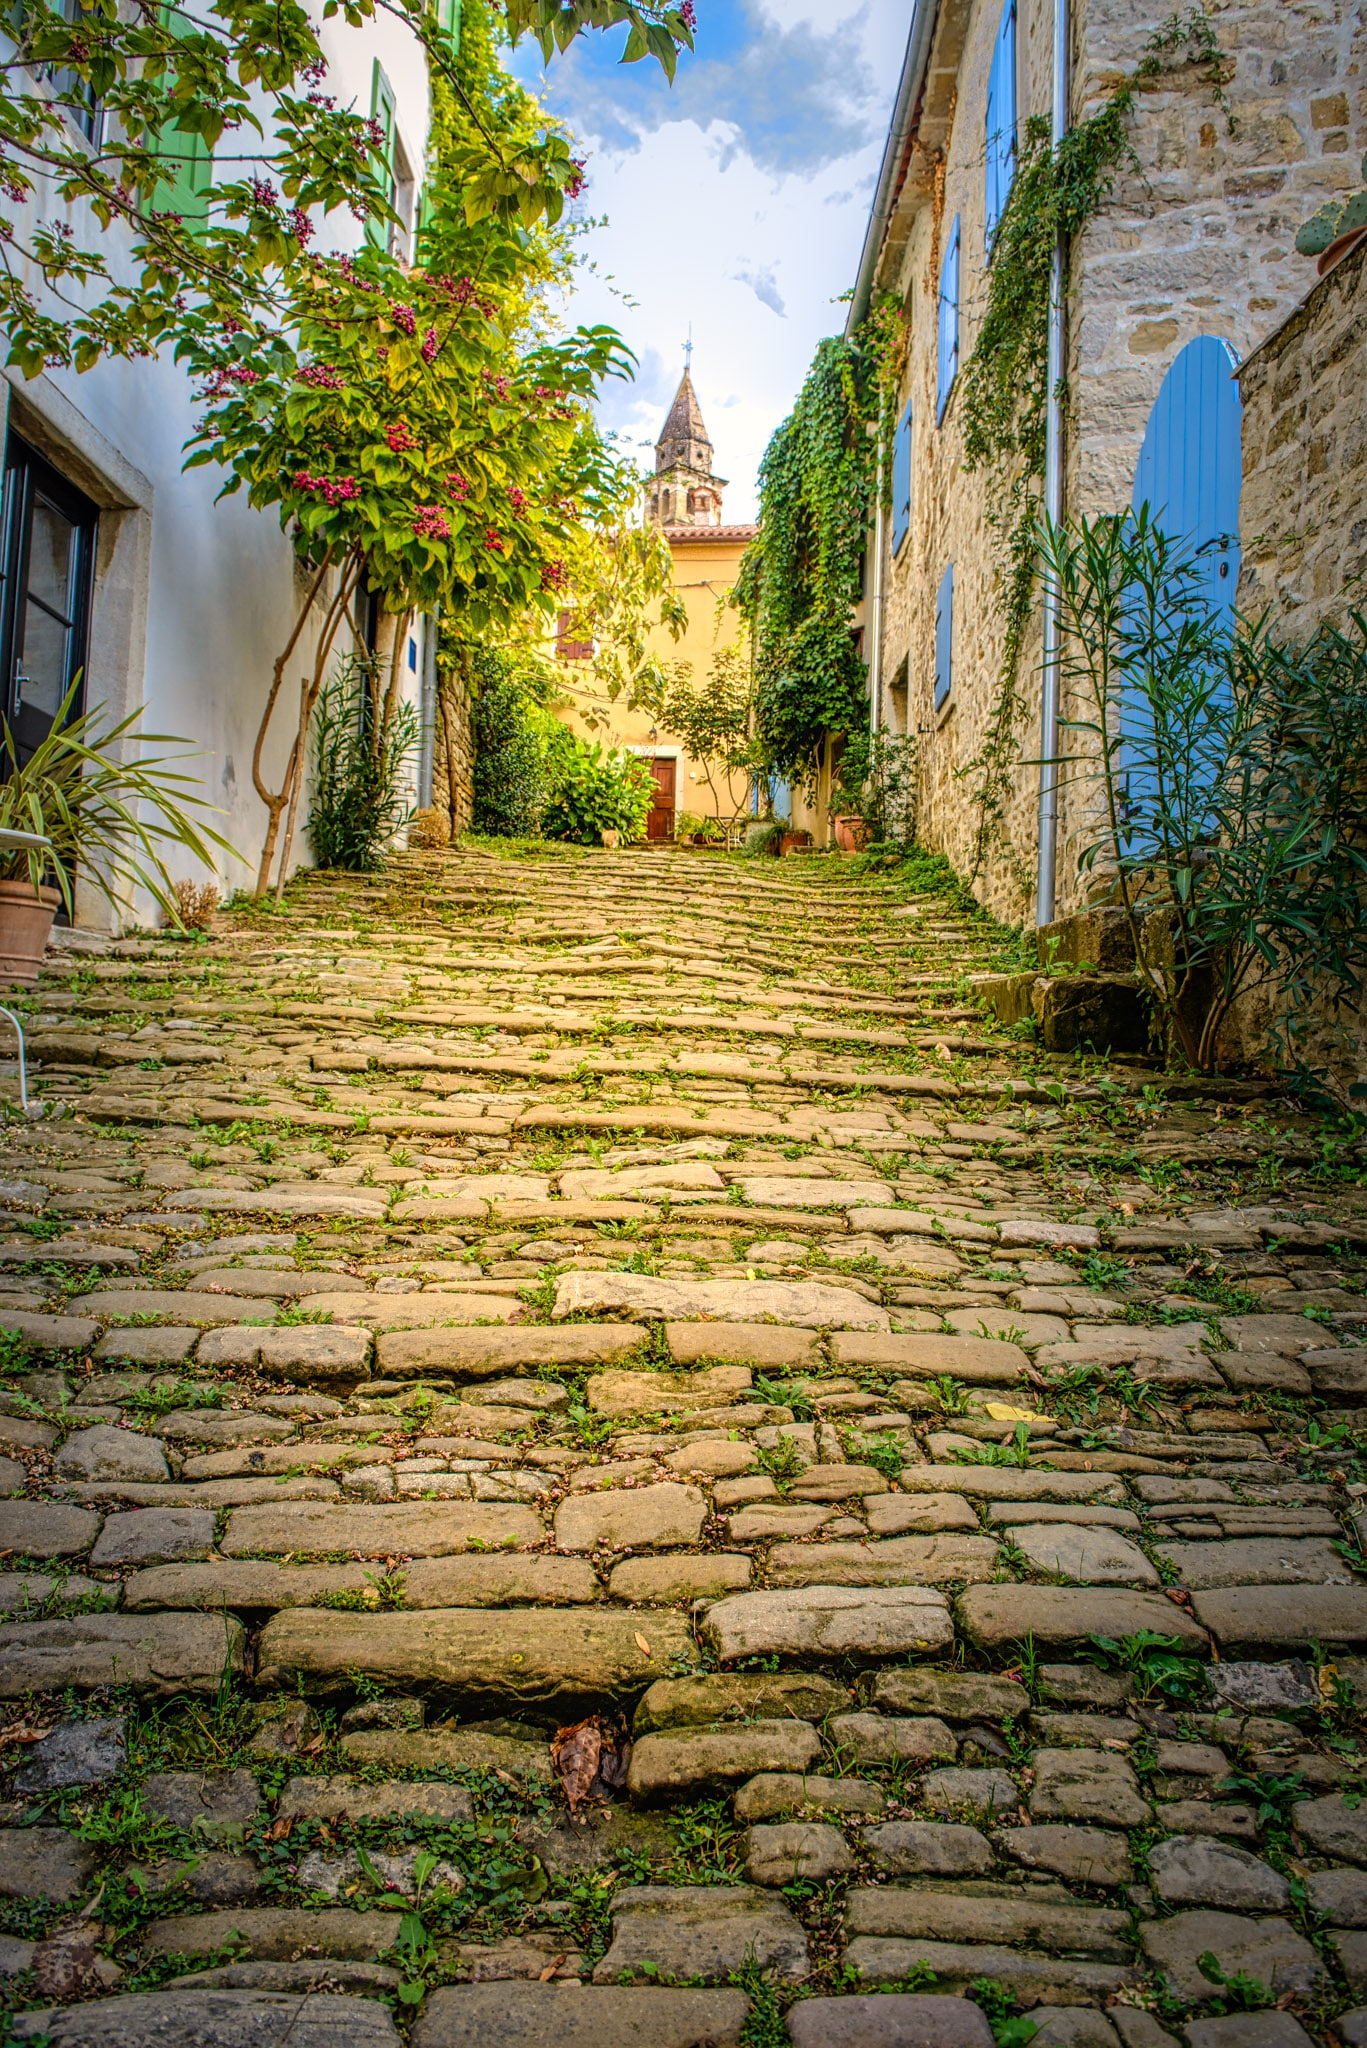 Looking up a stone paved street in the Medieval Istrian village of Motovun in Croatia.